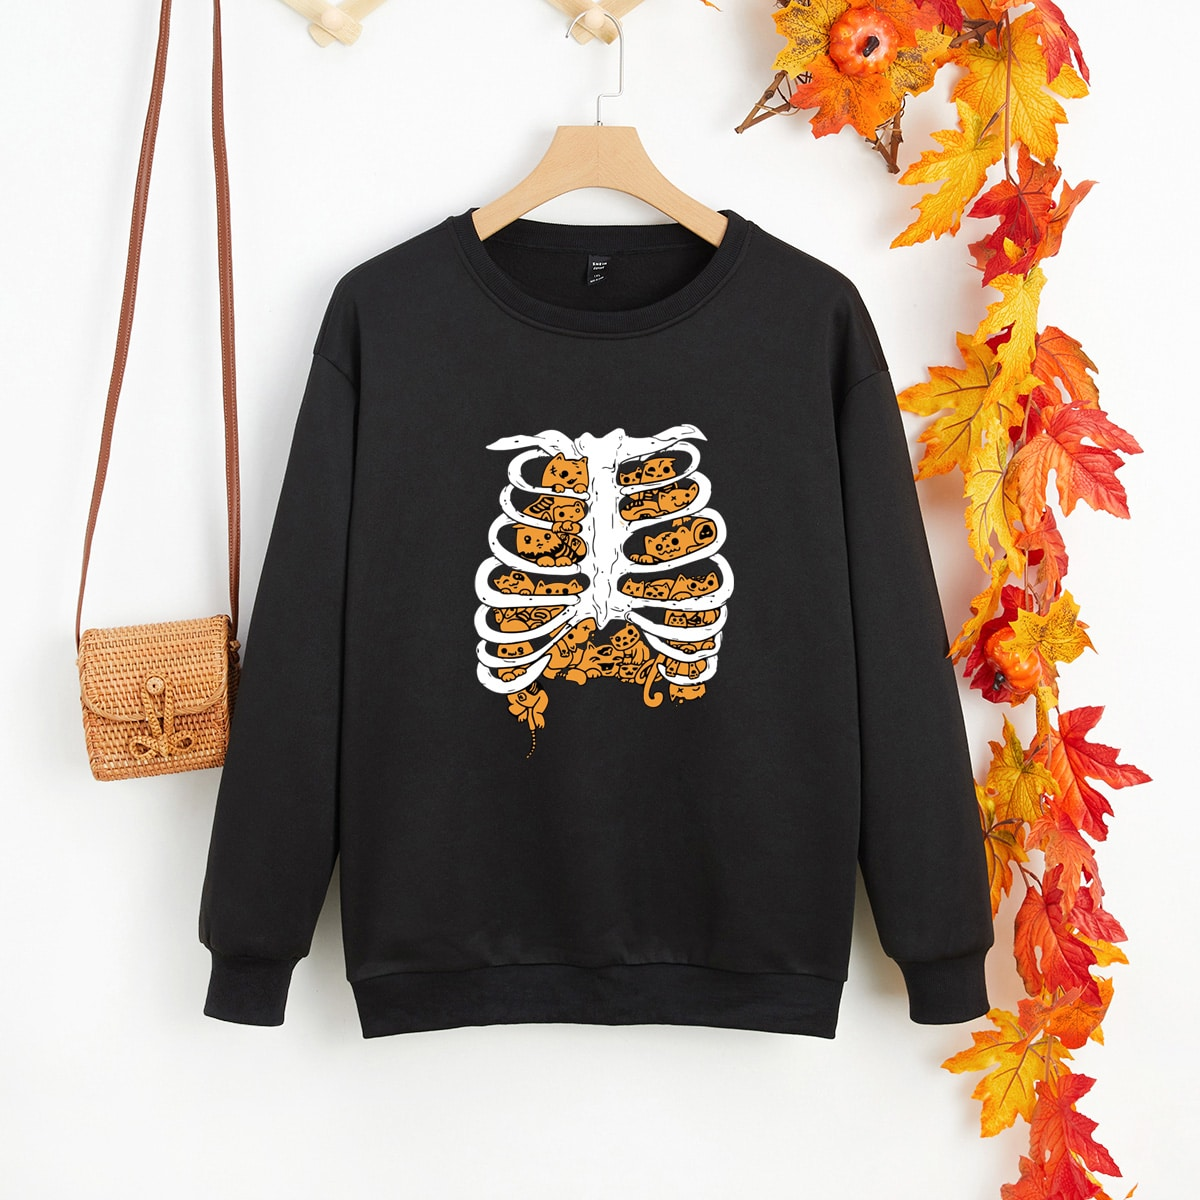 Plus Skeleton & Cartoon Graphic Thermal Lined Sweatshirt, SHEIN  - buy with discount